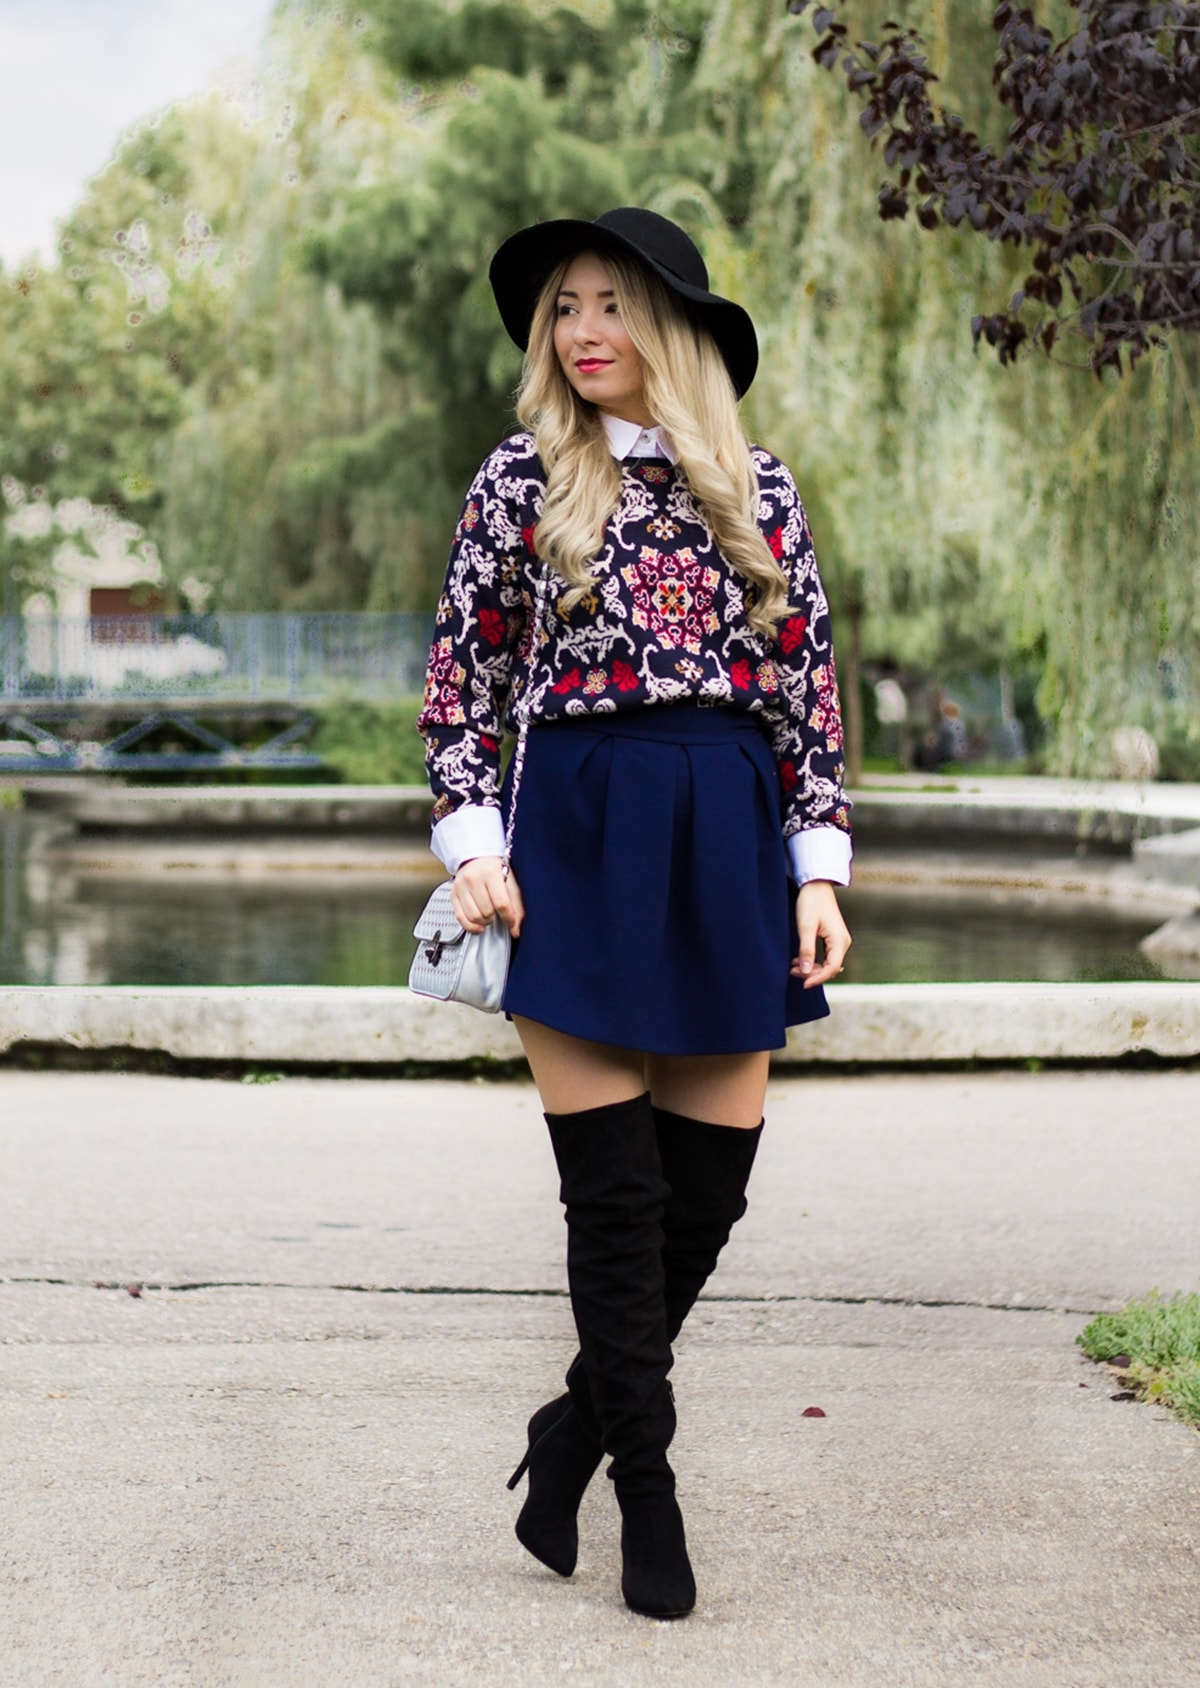 Street style: autumn look, black hat, print sweater, dark blue skirt, andreea design, over the knee black boots, heels, silver bag, sweater with shirt, andreea ristea, blogger, outfit, look of the day, ootd